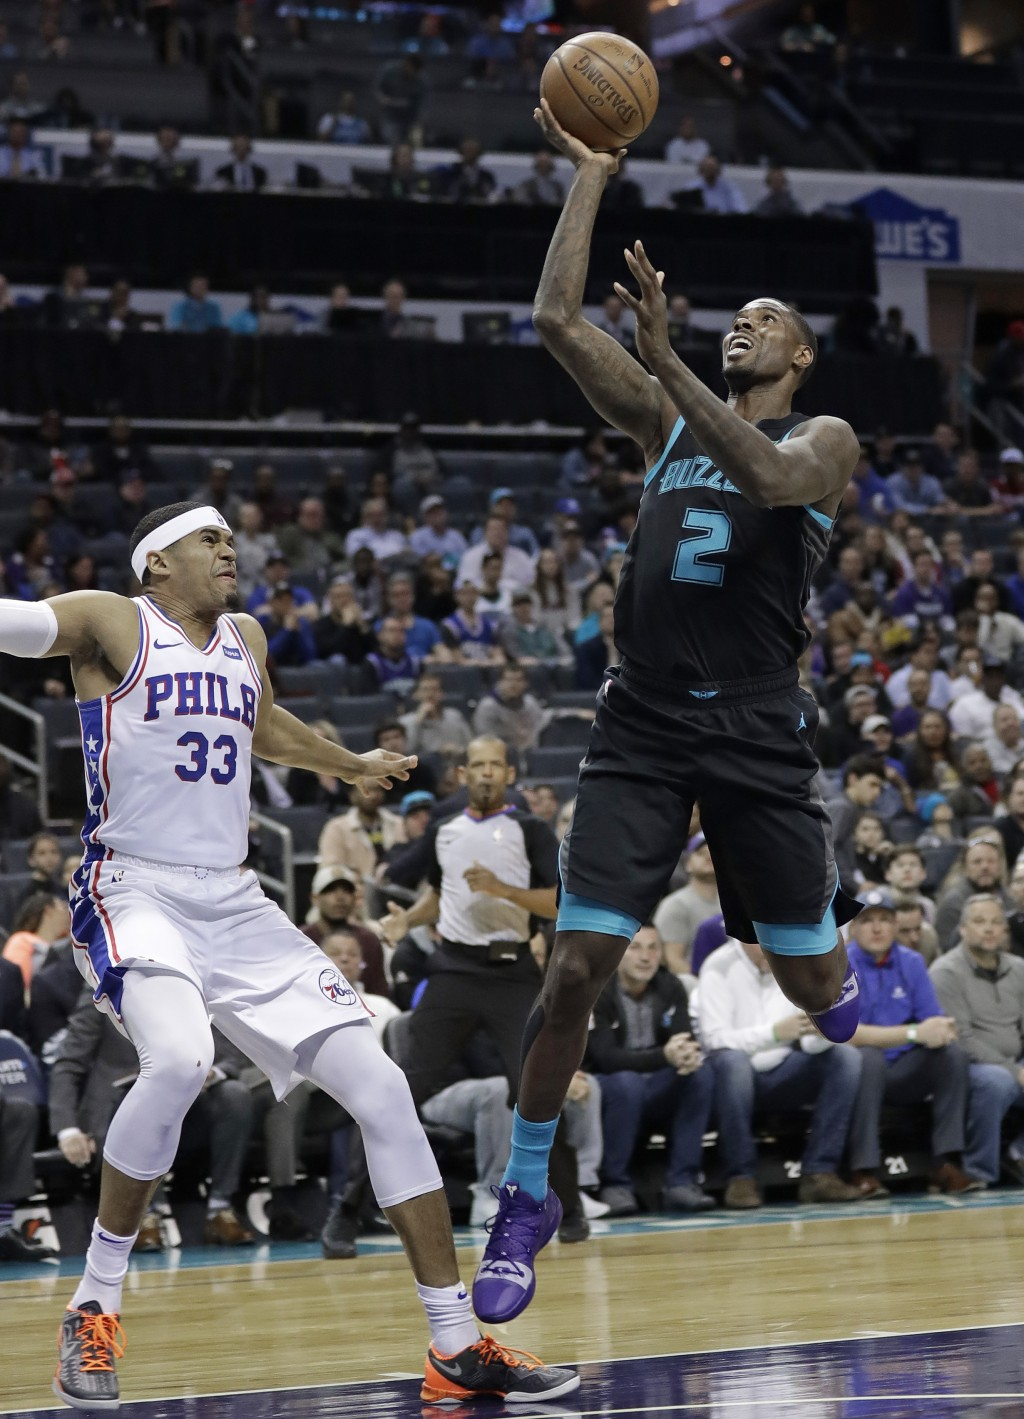 Charlotte Hornets' Marvin Williams (2) shoots against Philadelphia 76ers' Tobias Harris (33) during the first half of an NBA basketball game in Charlo